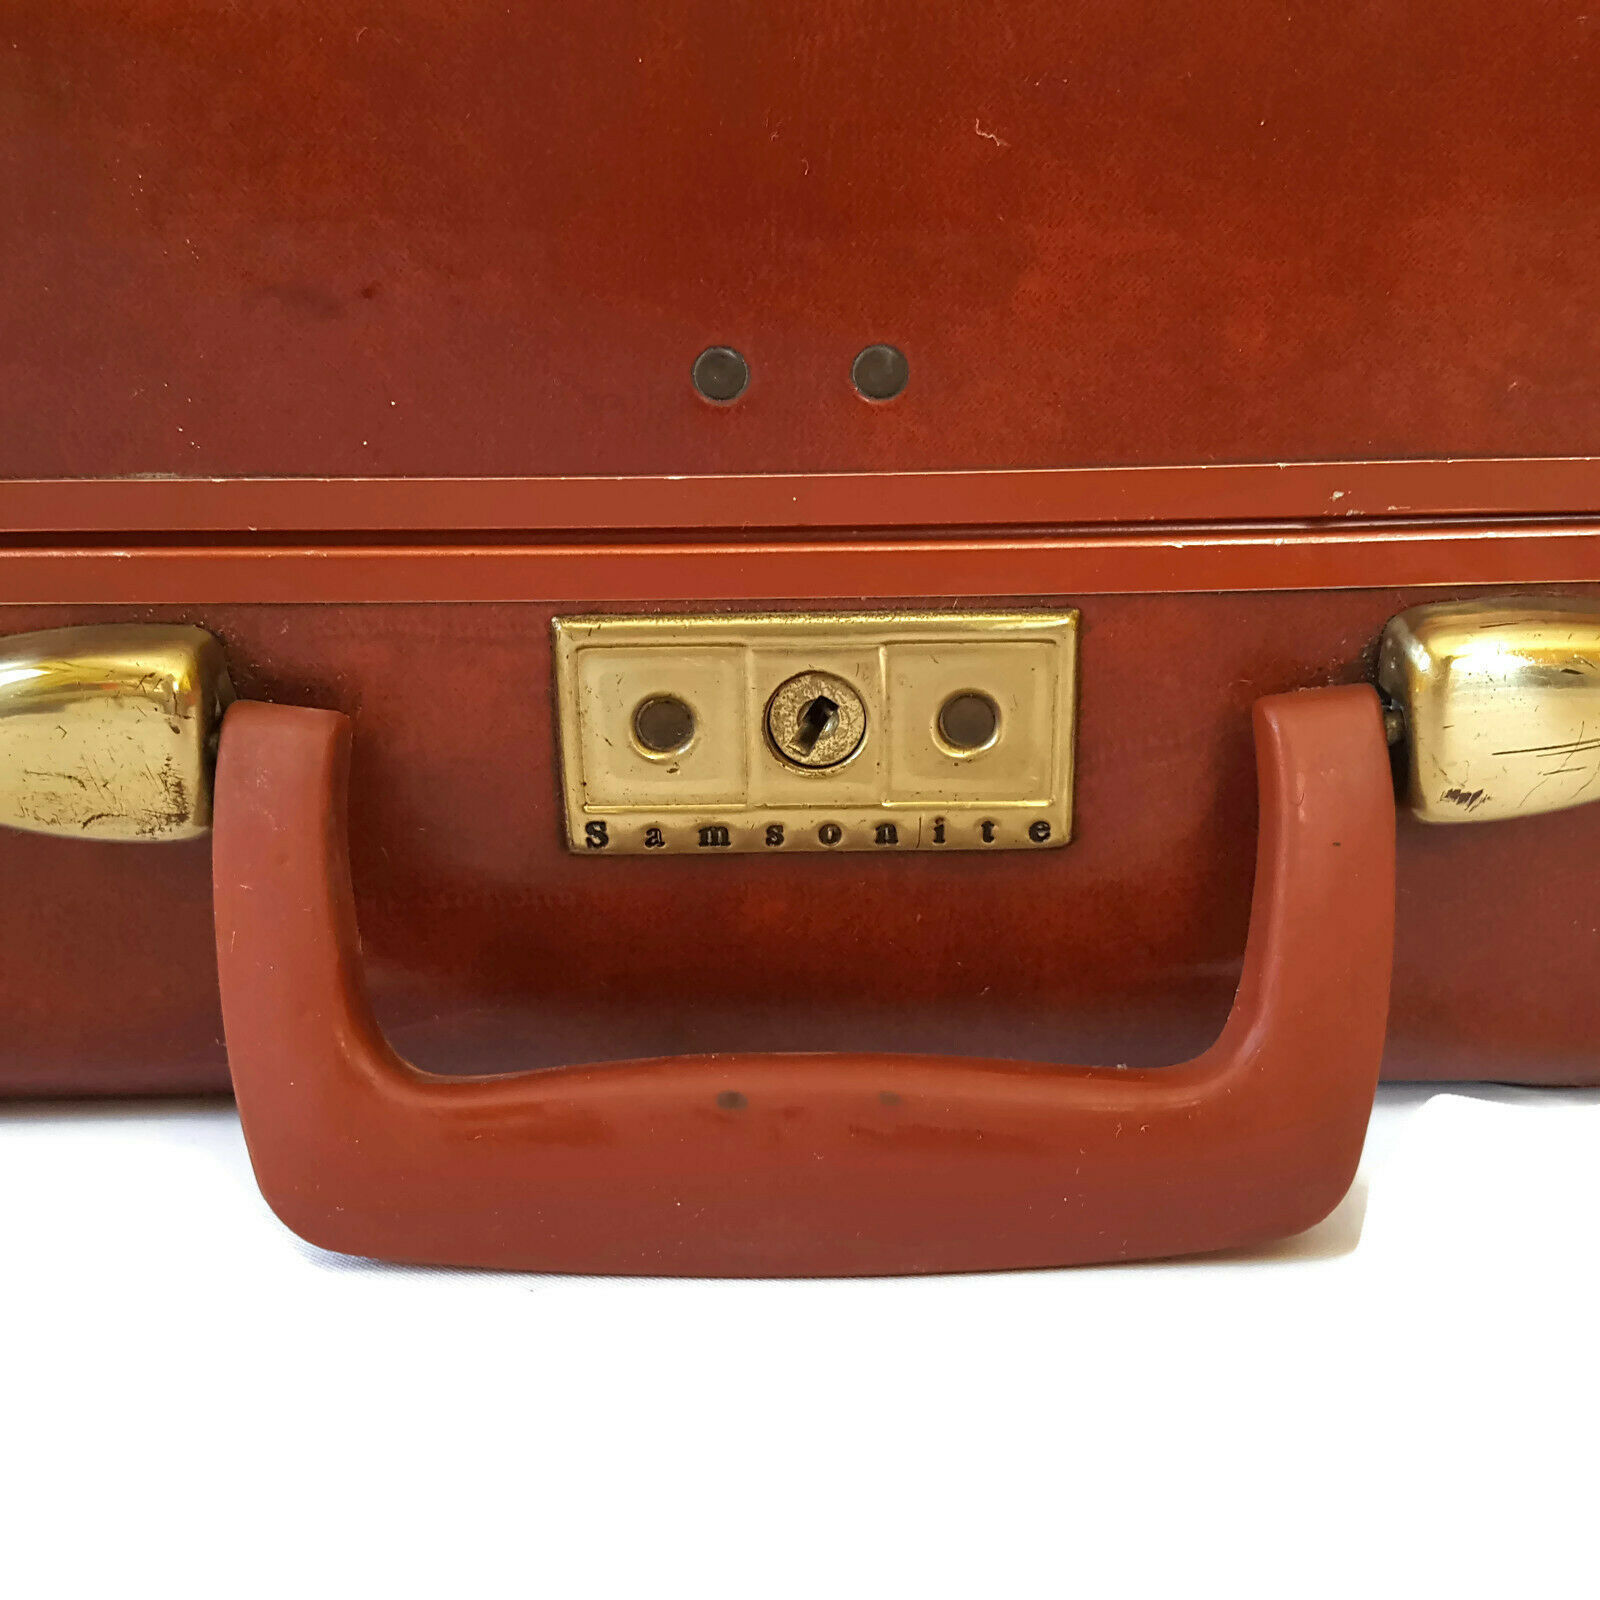 Vintage Samsonite Brown Suitcase 1950s Luggage Burlesque Case Valise